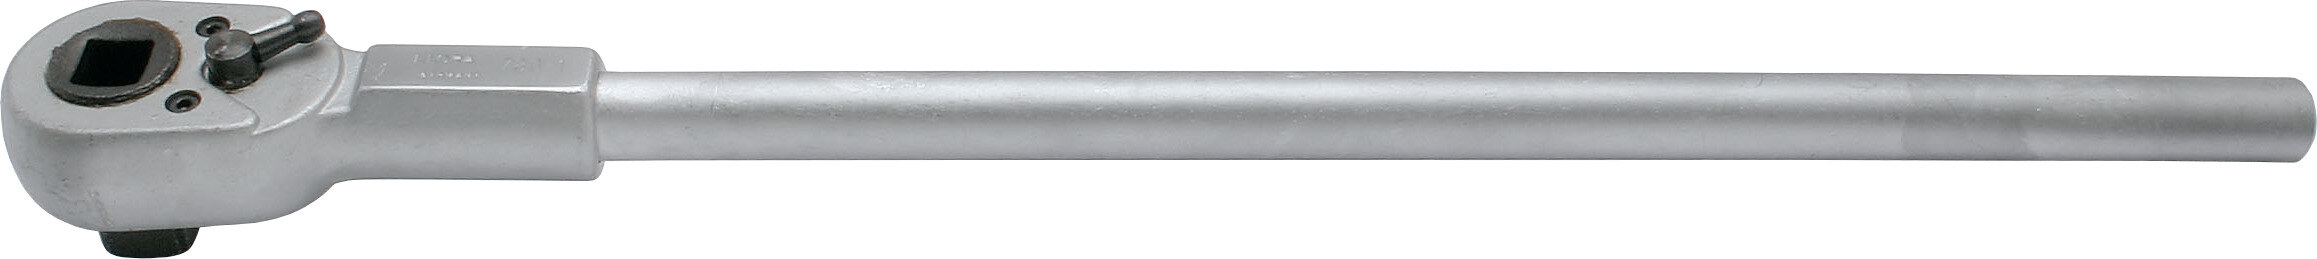 "ELORA Reversible Ratchet 1"", with Tommy Bar, ELORA-780-1"